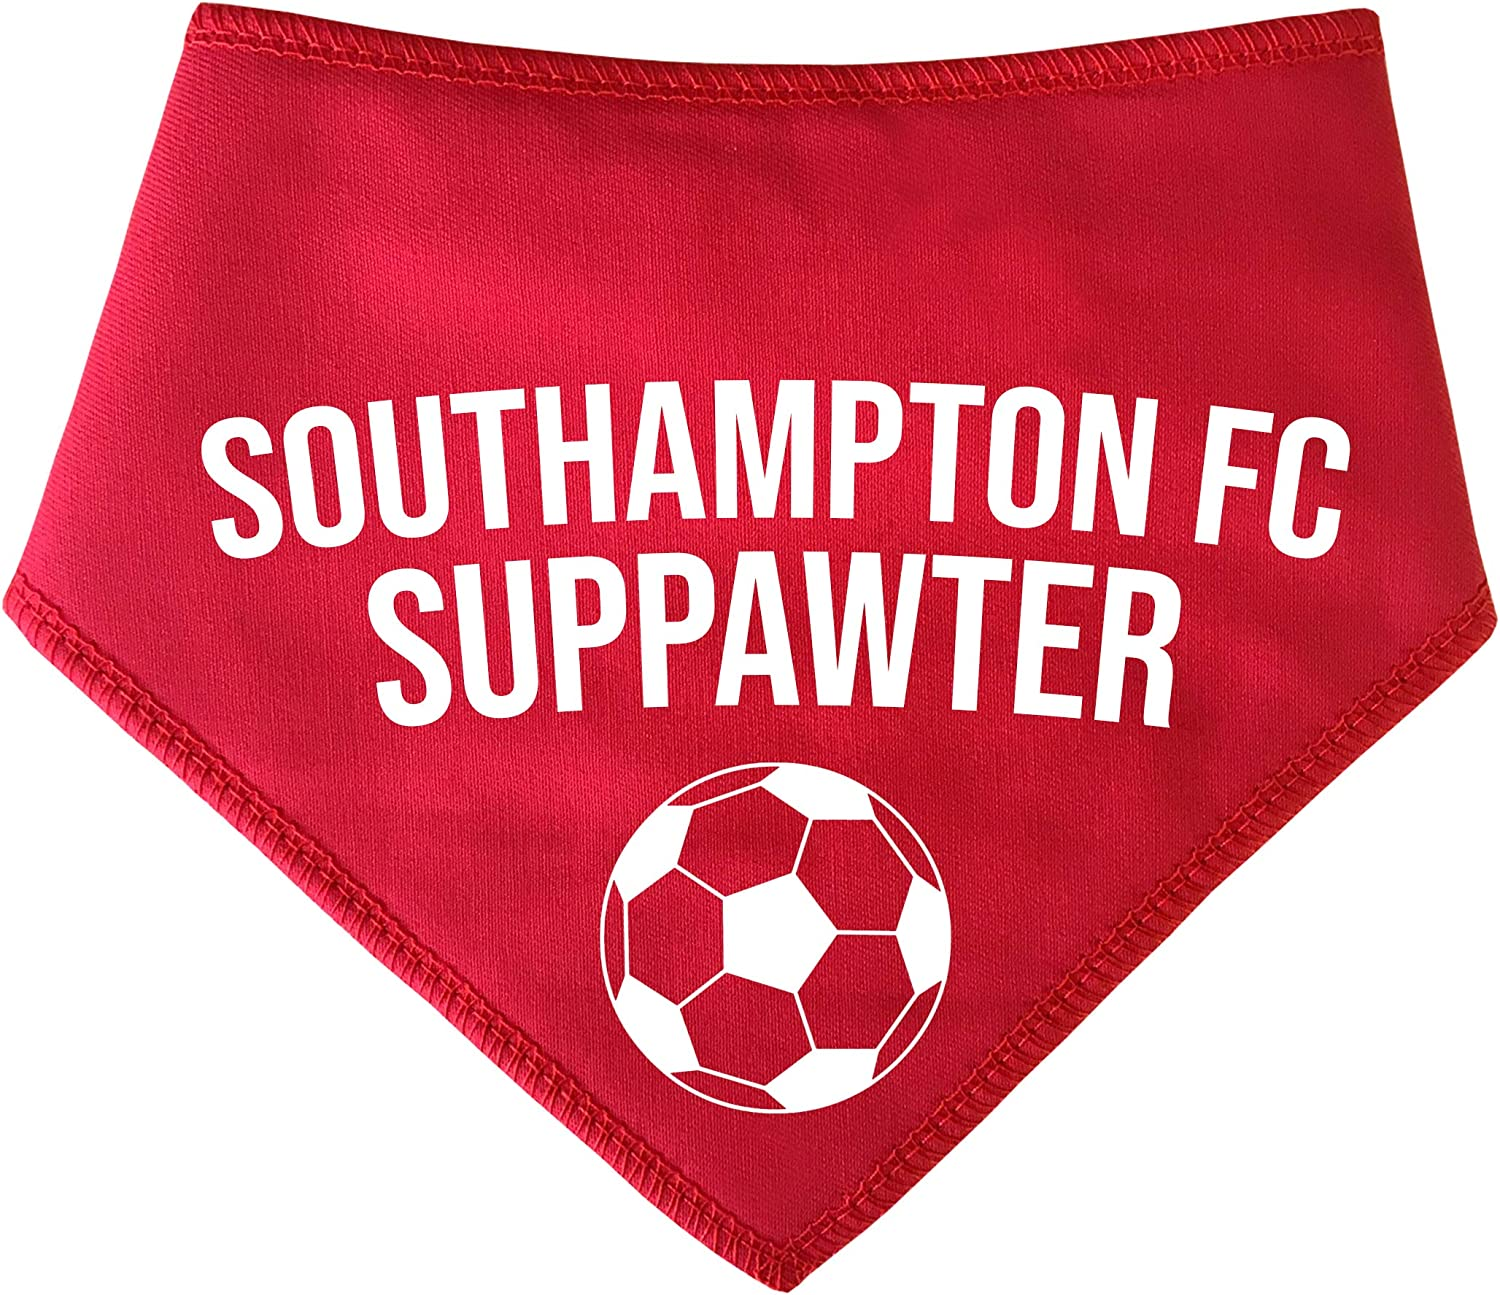 Small Dogs Terriers /& Cockerpoo Spoilt Rotten Pets S2 Red Southampton Football Suppawter The Saints Dog Scarf Bandana For Dogs